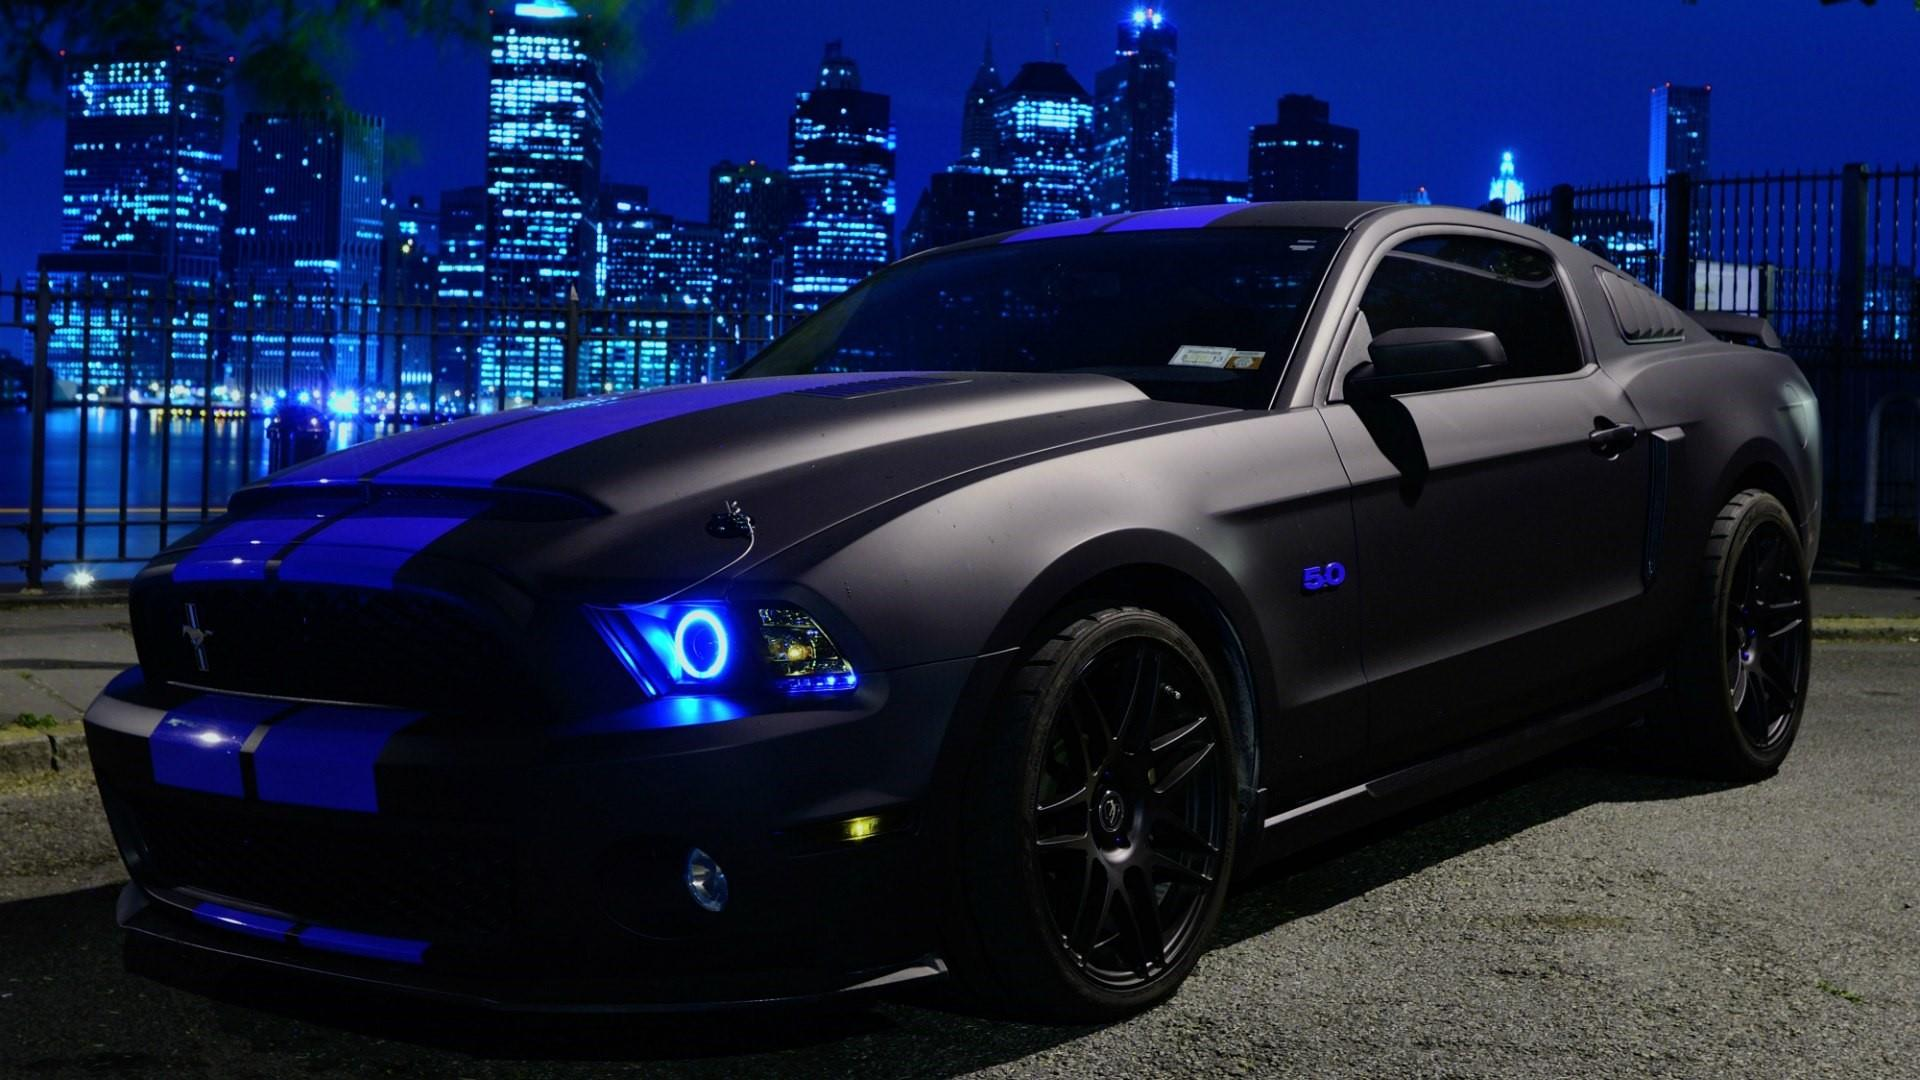 Black Ford Mustang Wallpapers - Top